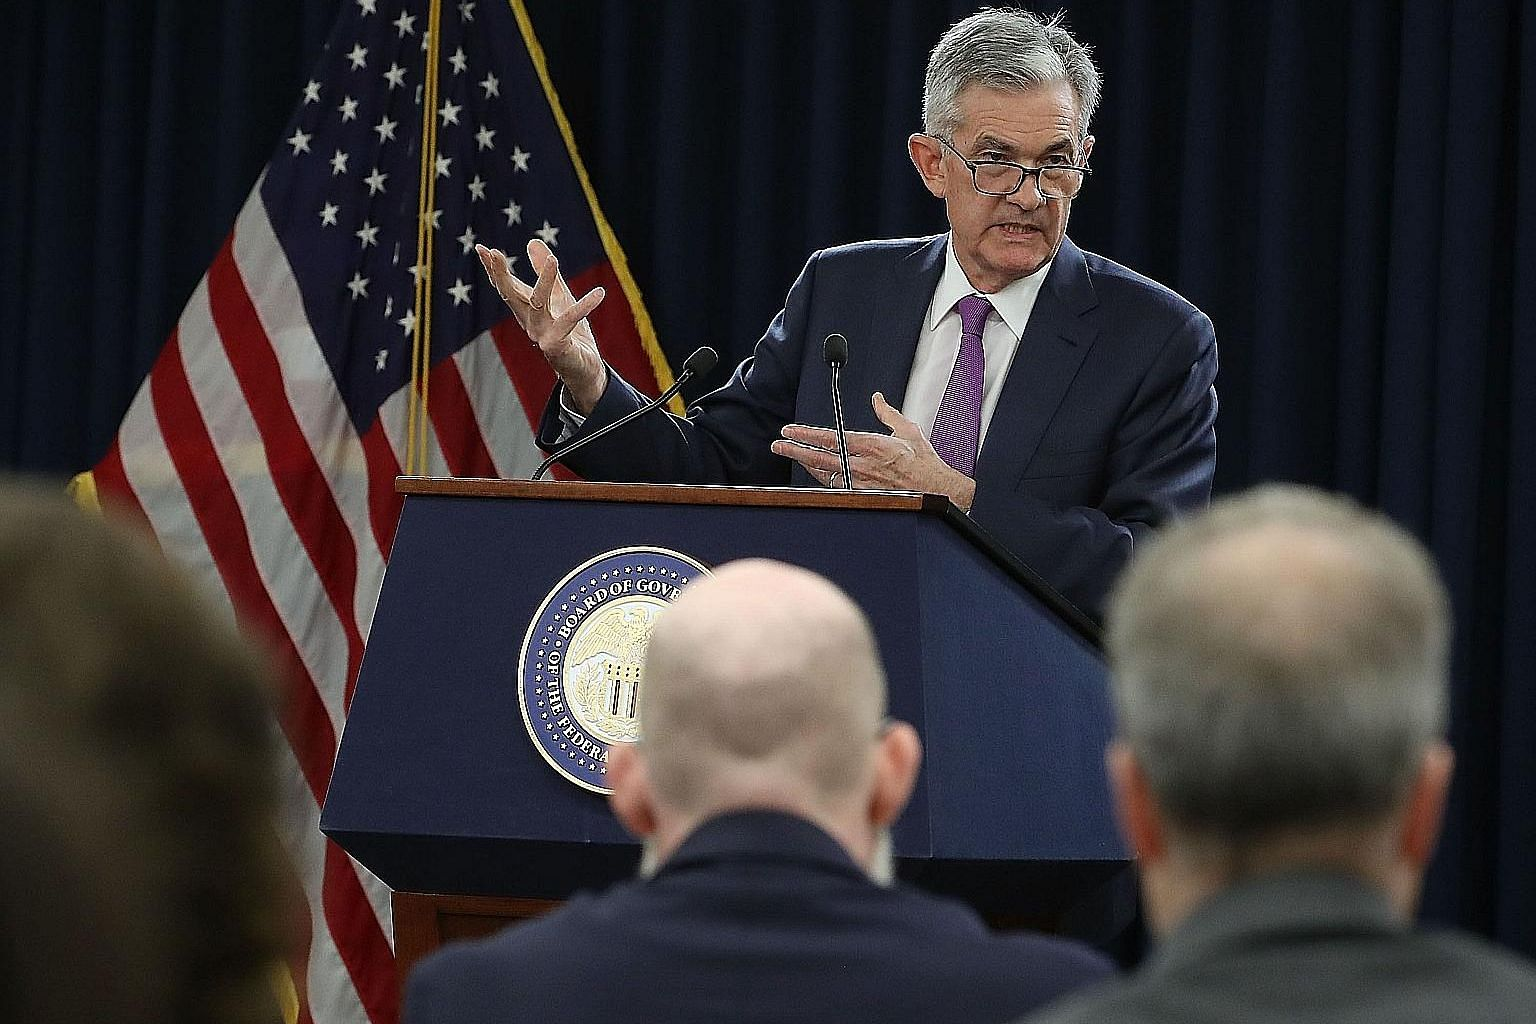 United States Federal Reserve chairman Jerome Powell speaking at a news conference in Washington on Wednesday. The Fed has raised the short-term interest rates by a quarter of a percentage point, and projected one more rise before the end of this yea